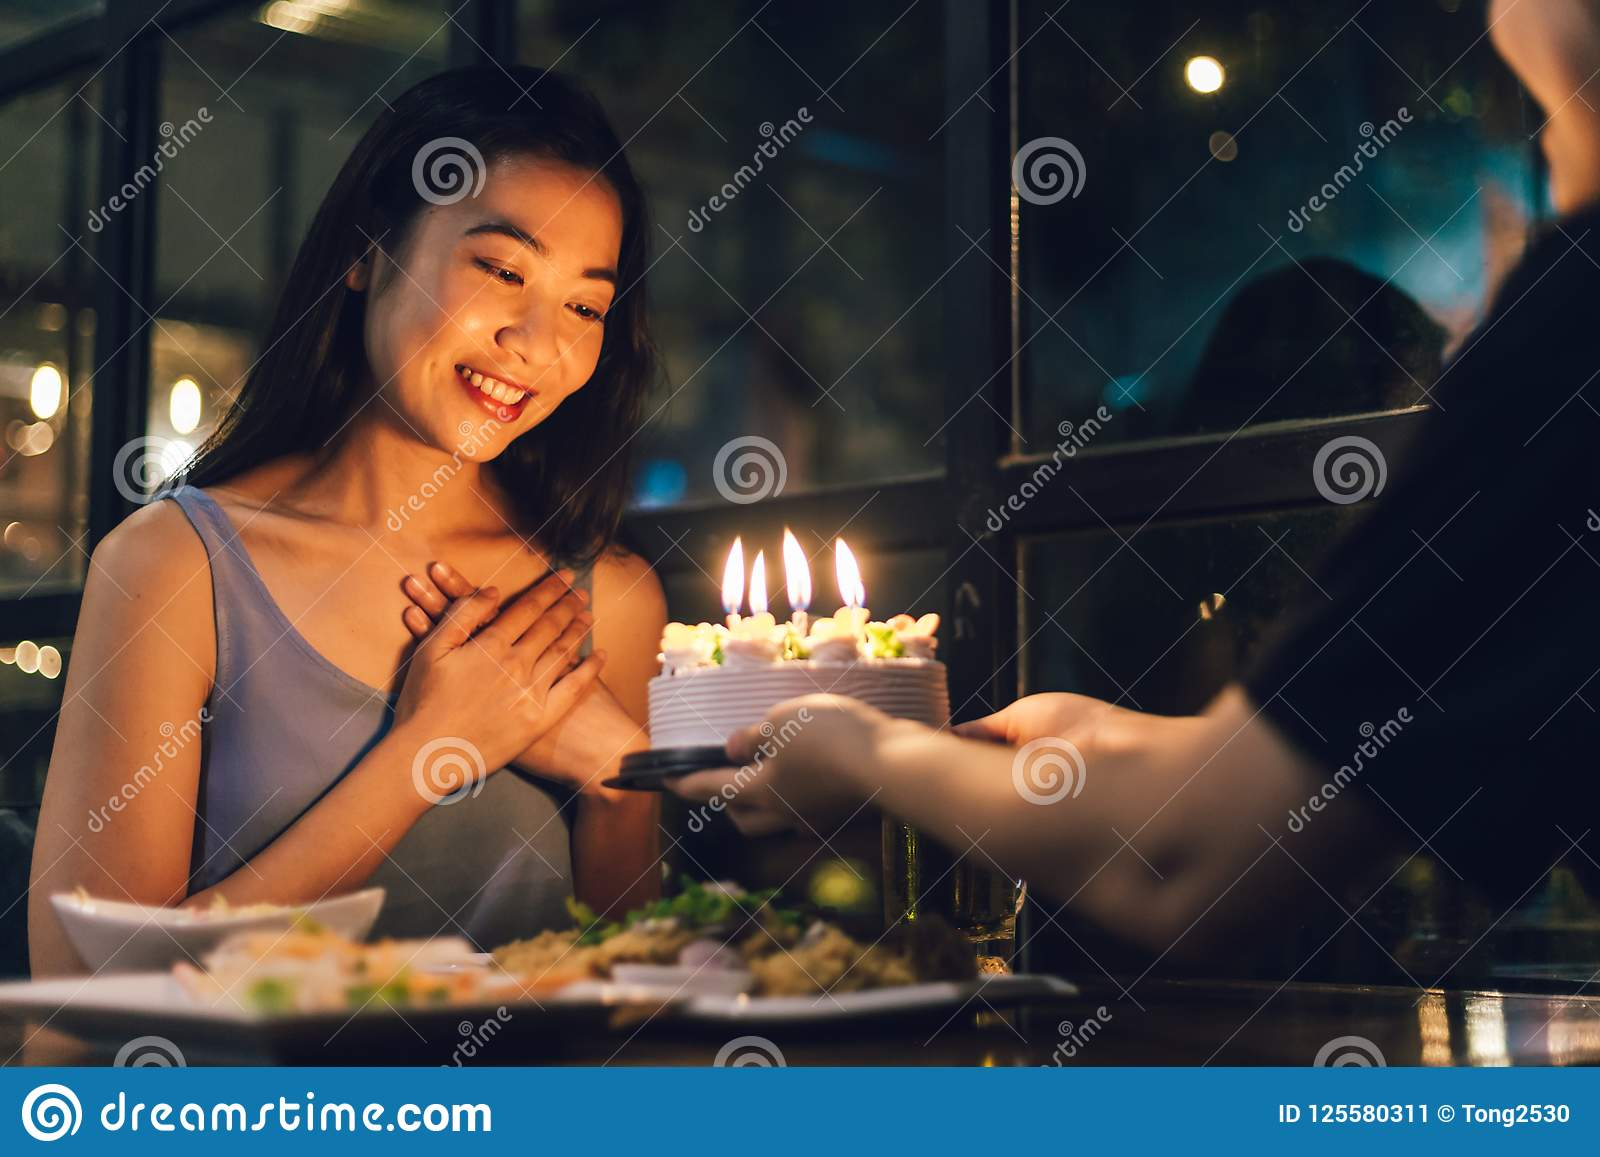 Asian girl impresses with her birthday cake in the night of happiness.